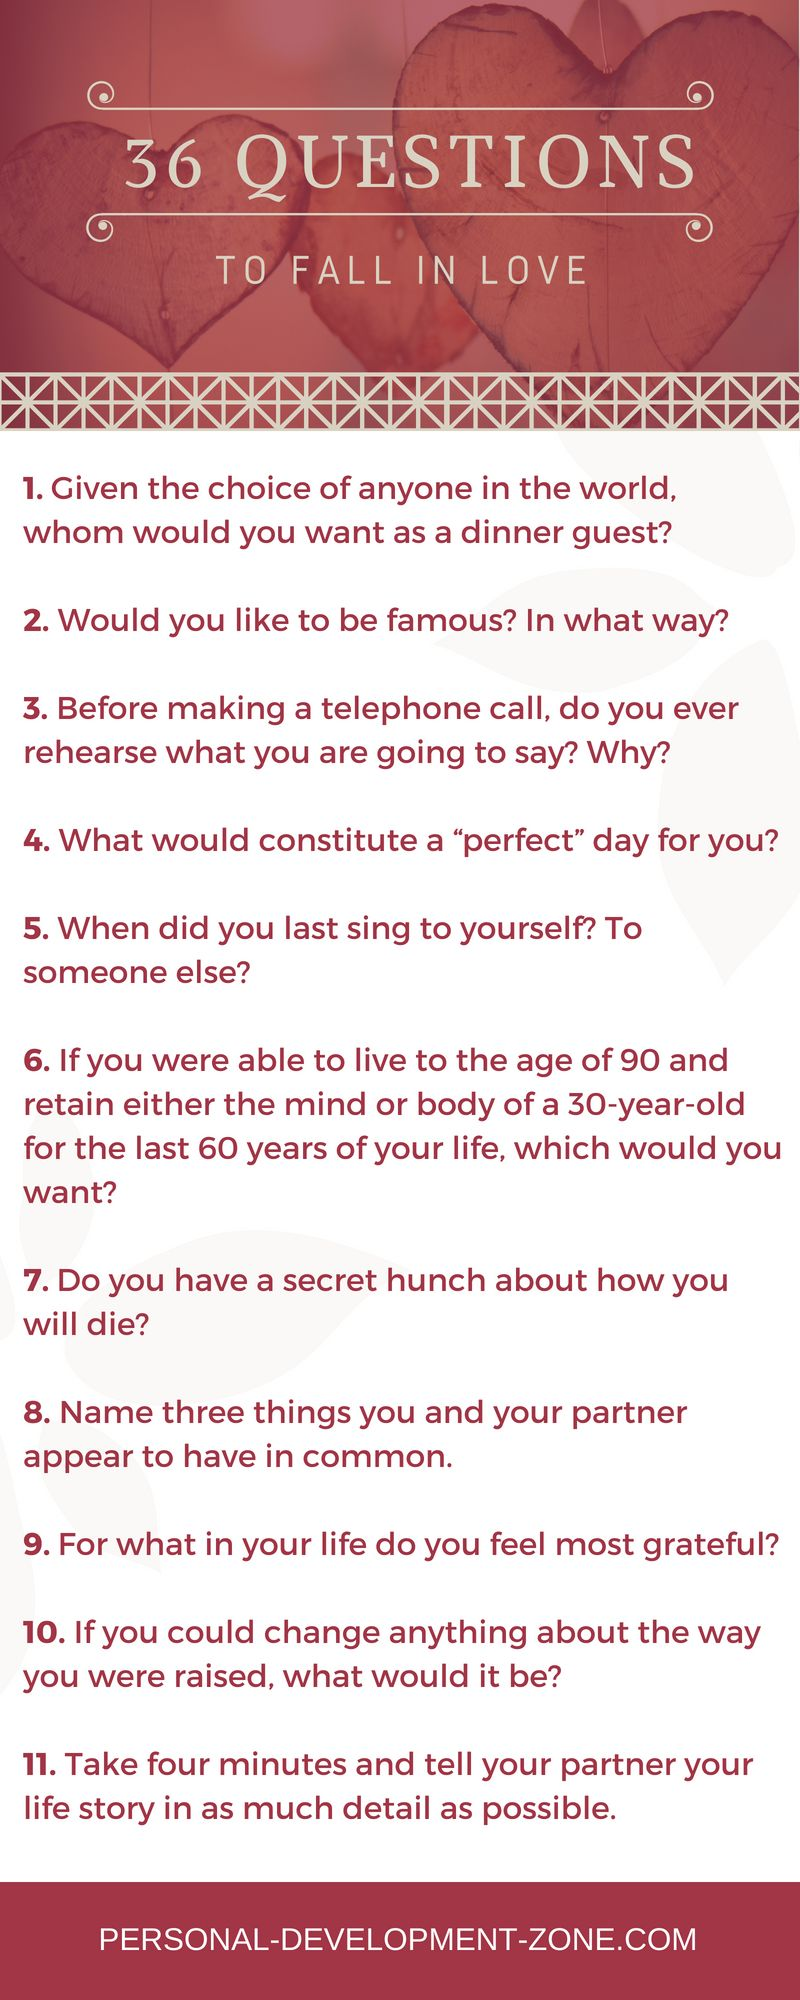 Nytimes 36 questions to fall in love